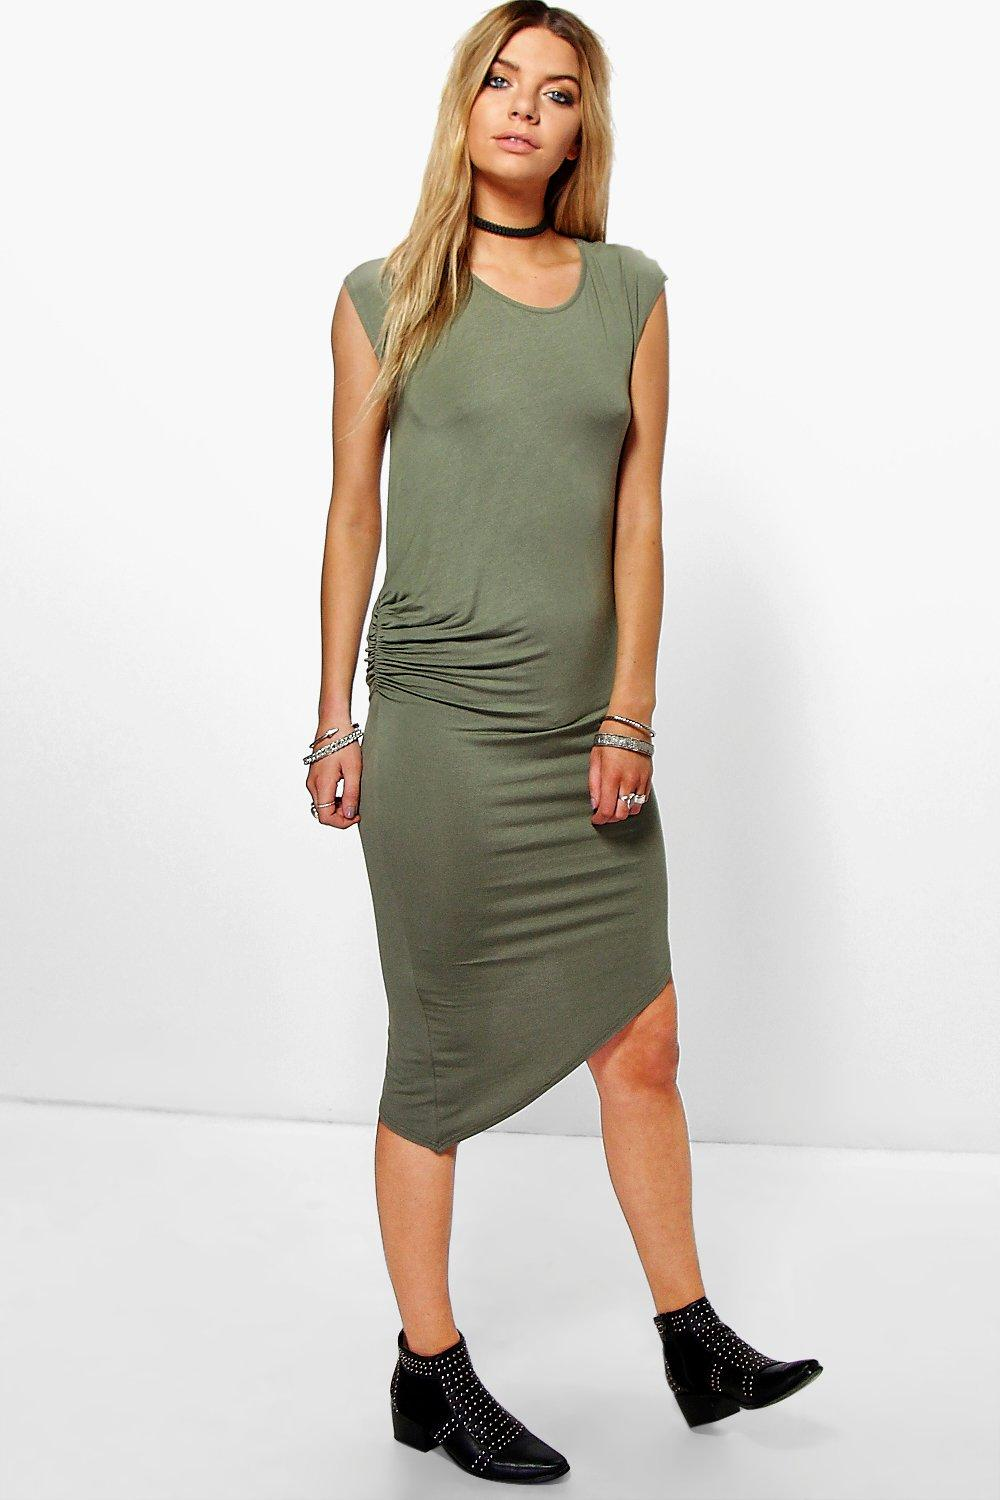 Sally Assymetric Basic Midi Dress